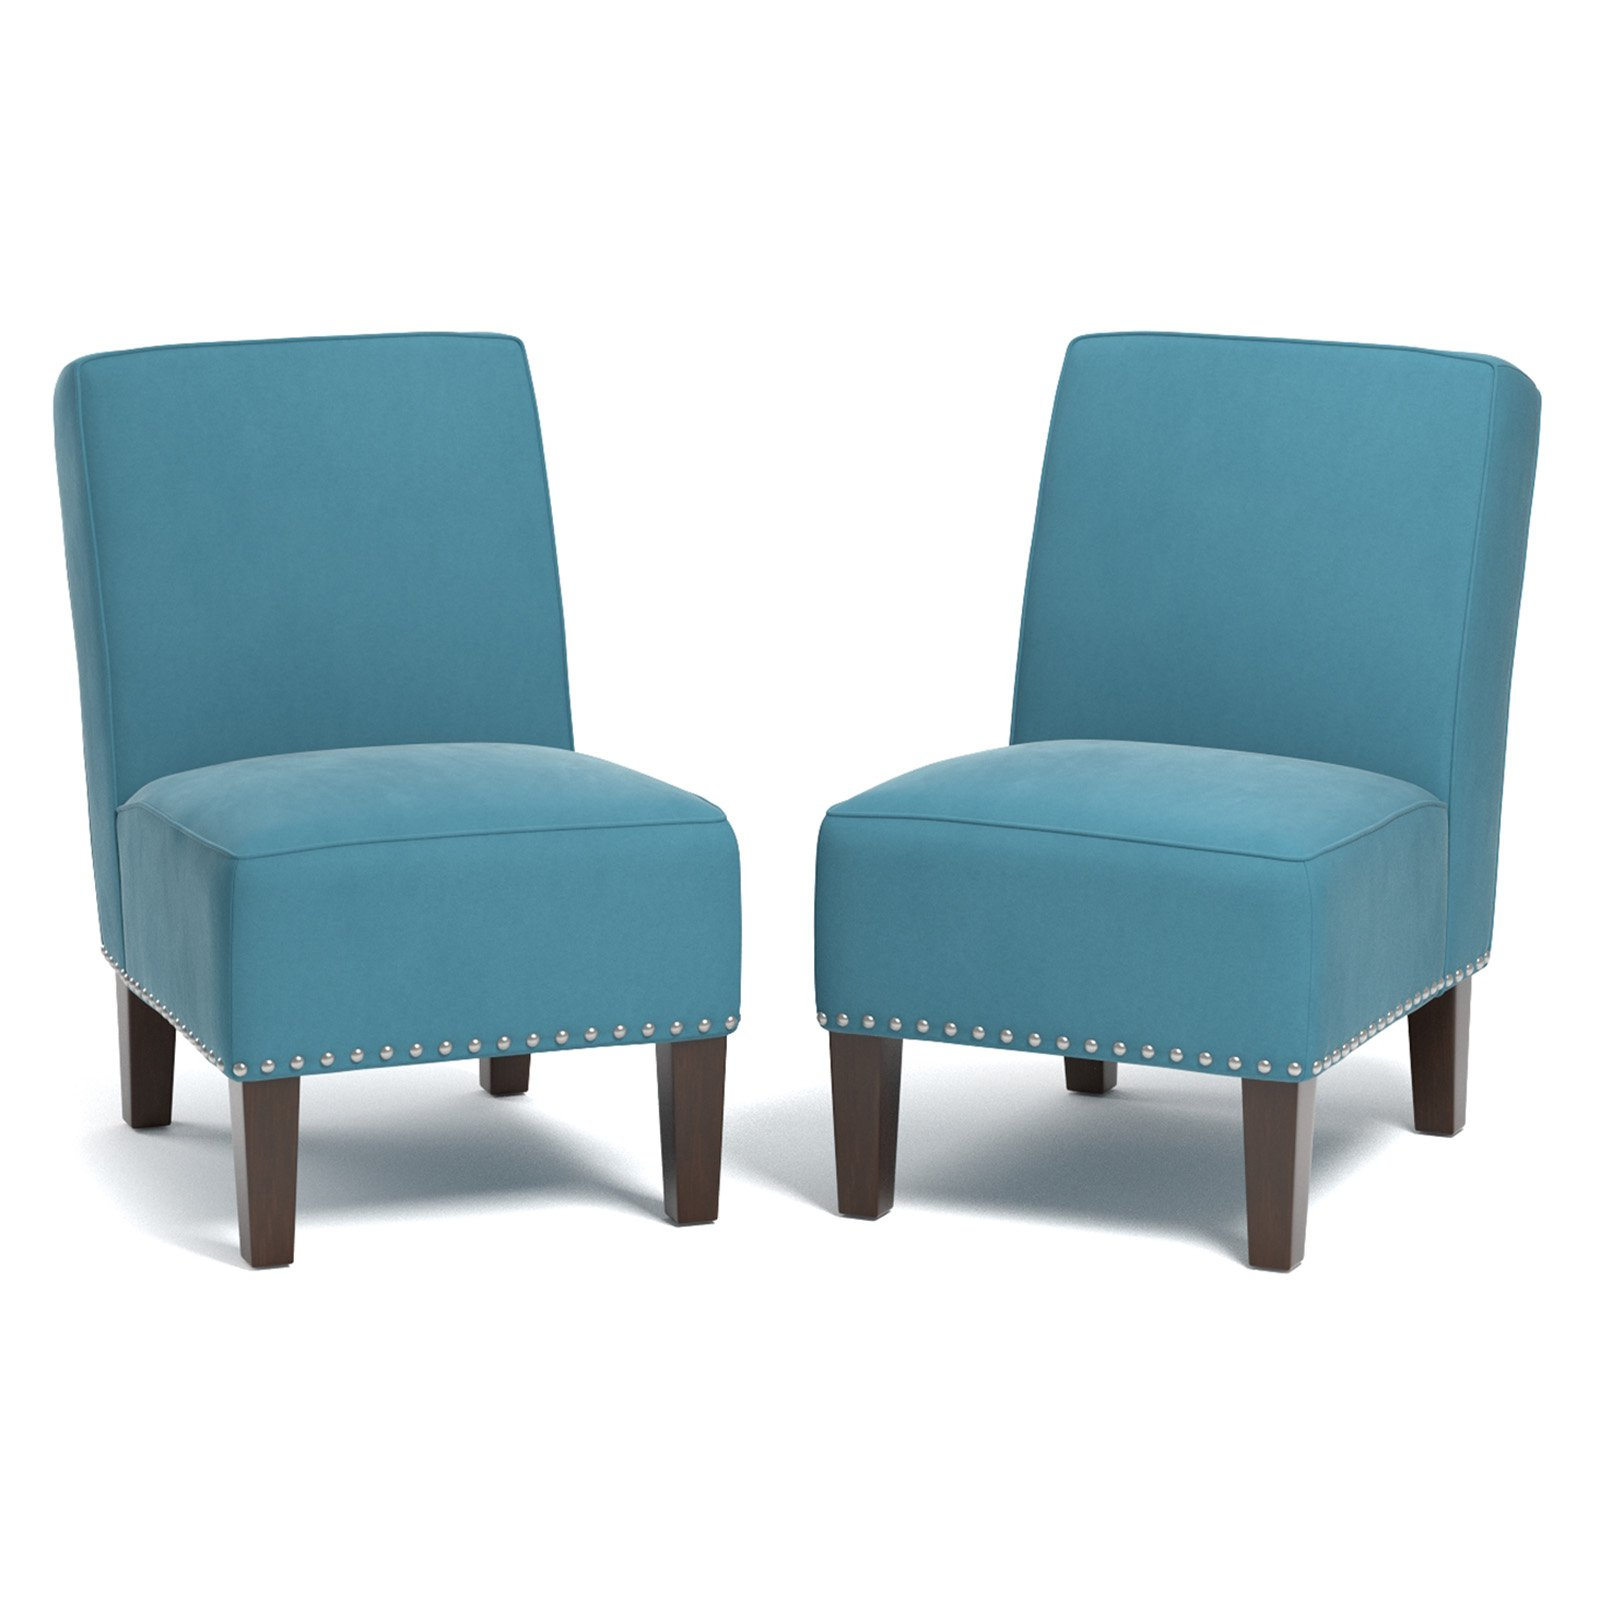 Beautiful Brodee Armless Chair In Velvet, Multiple Colors (Set Of 2)